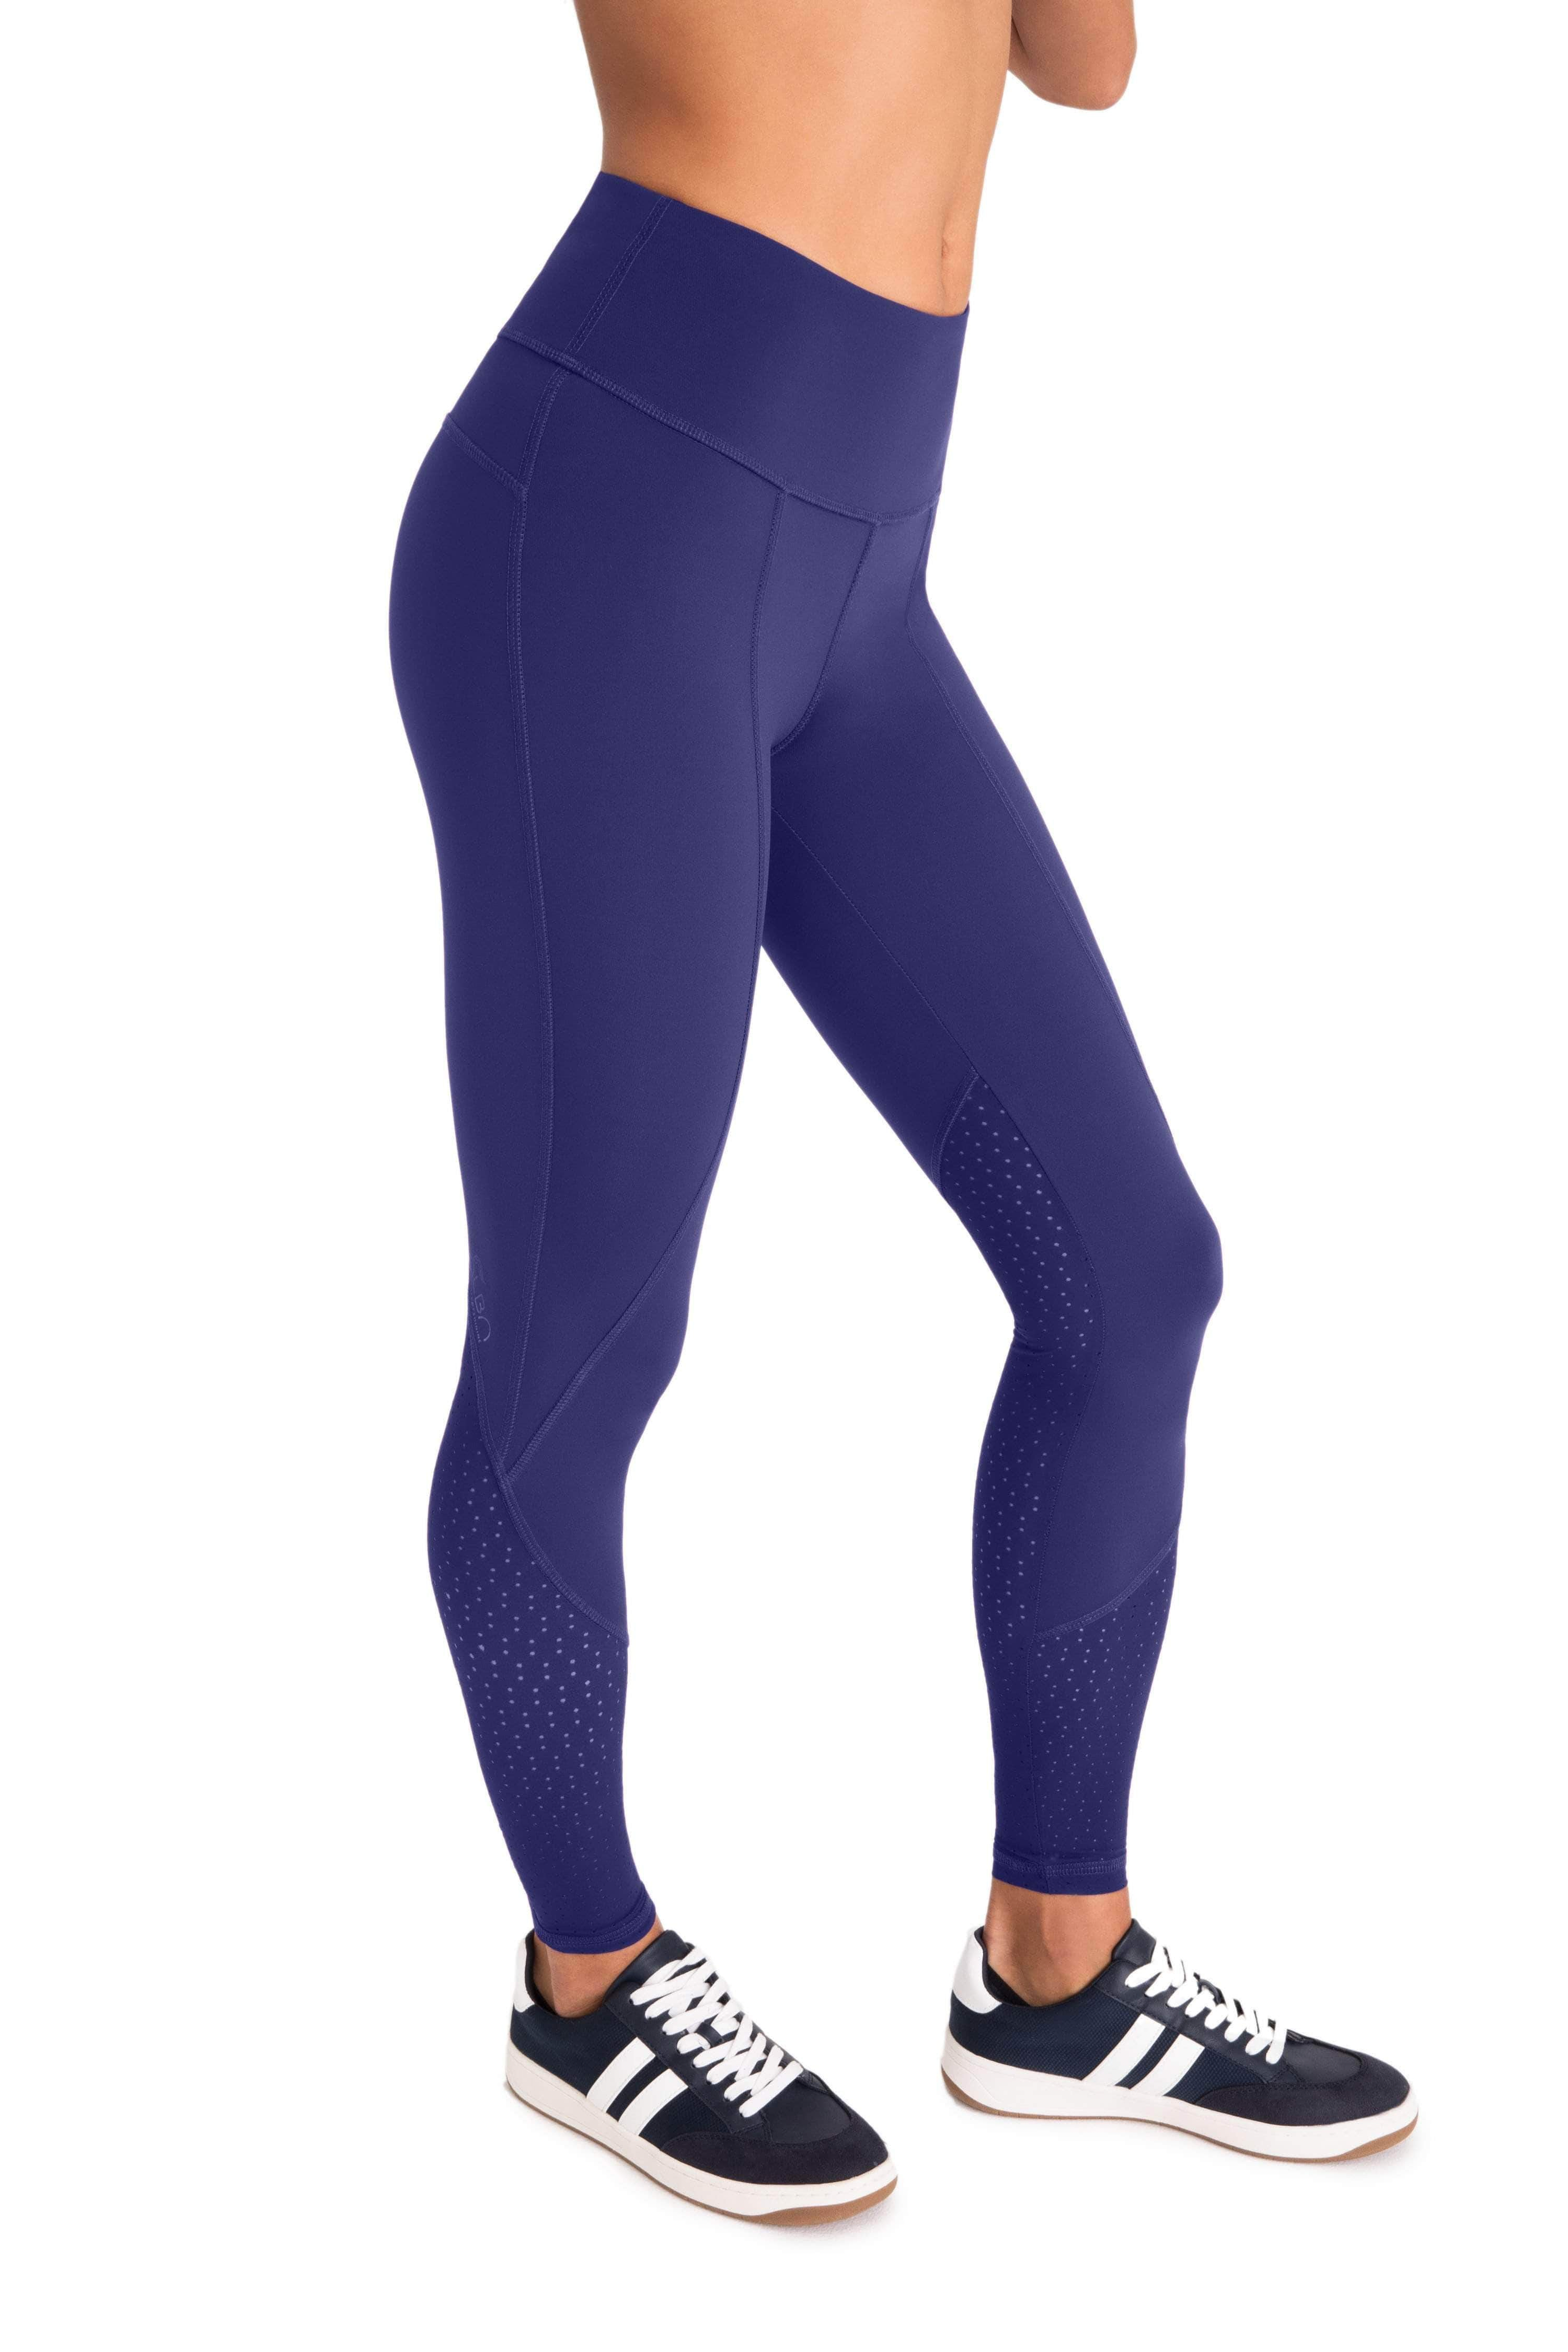 Workout of the Day Leggings (Blue) - Final Sale